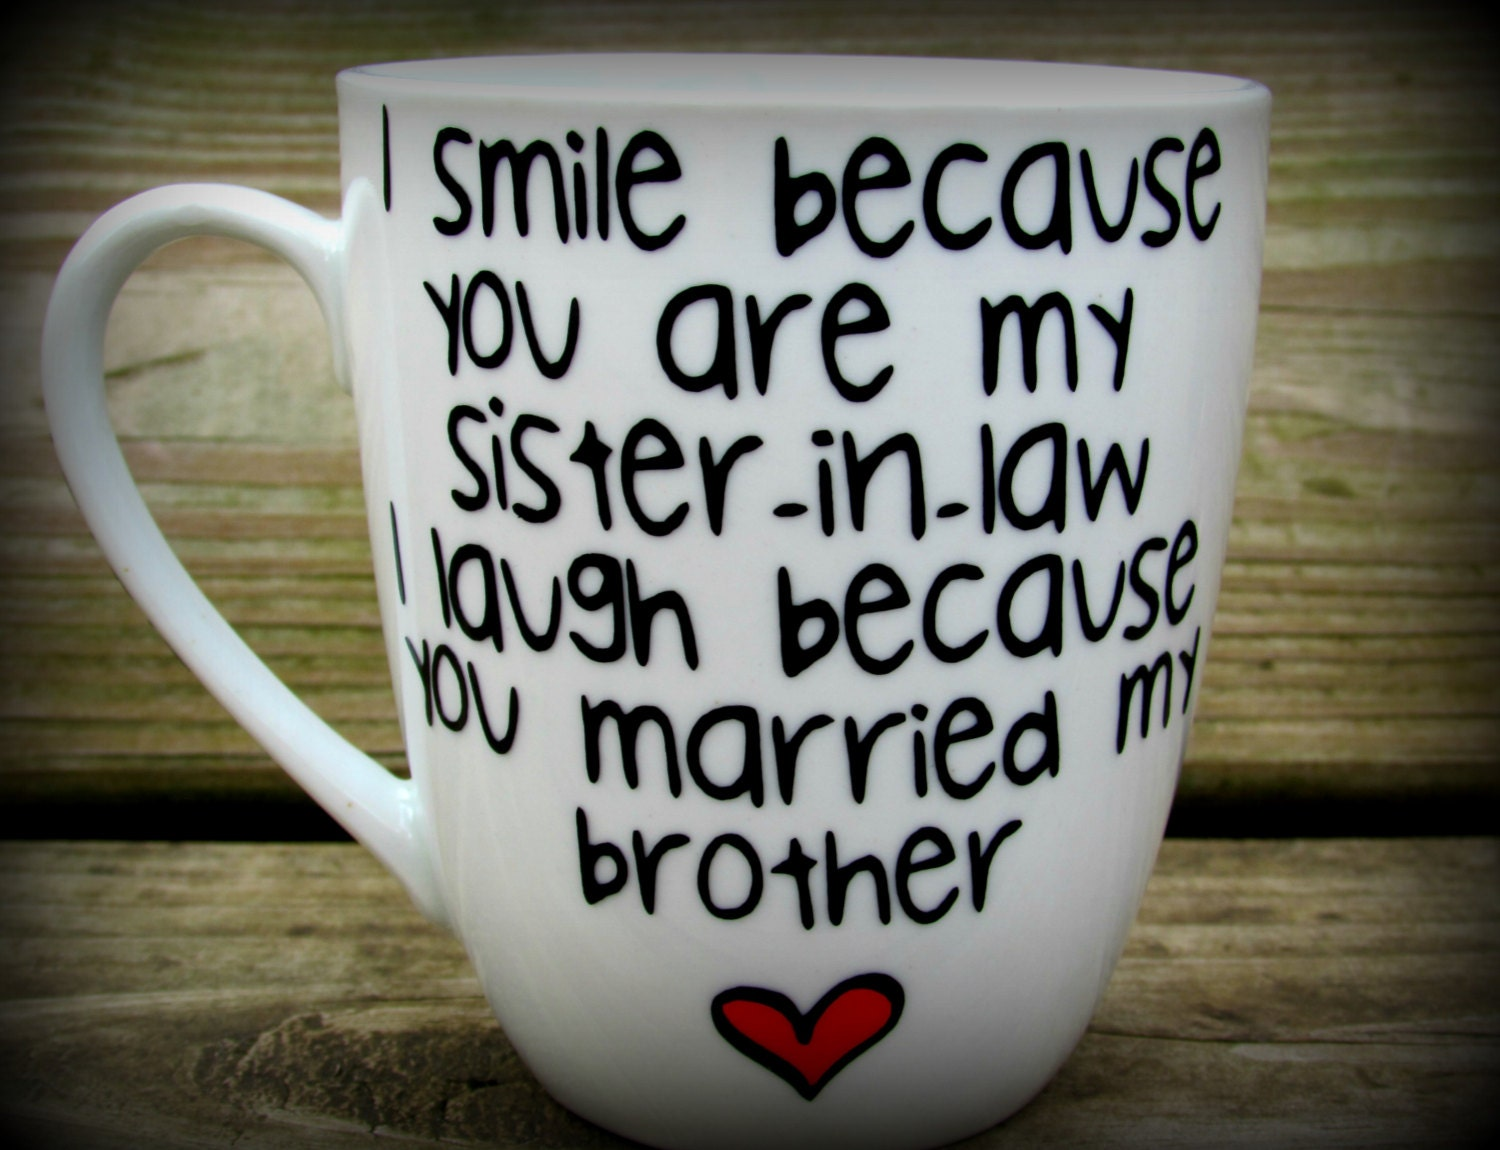 Wedding Present For Brother And Sister In Law : Sister in law Sister in law gift sister in law mug sister